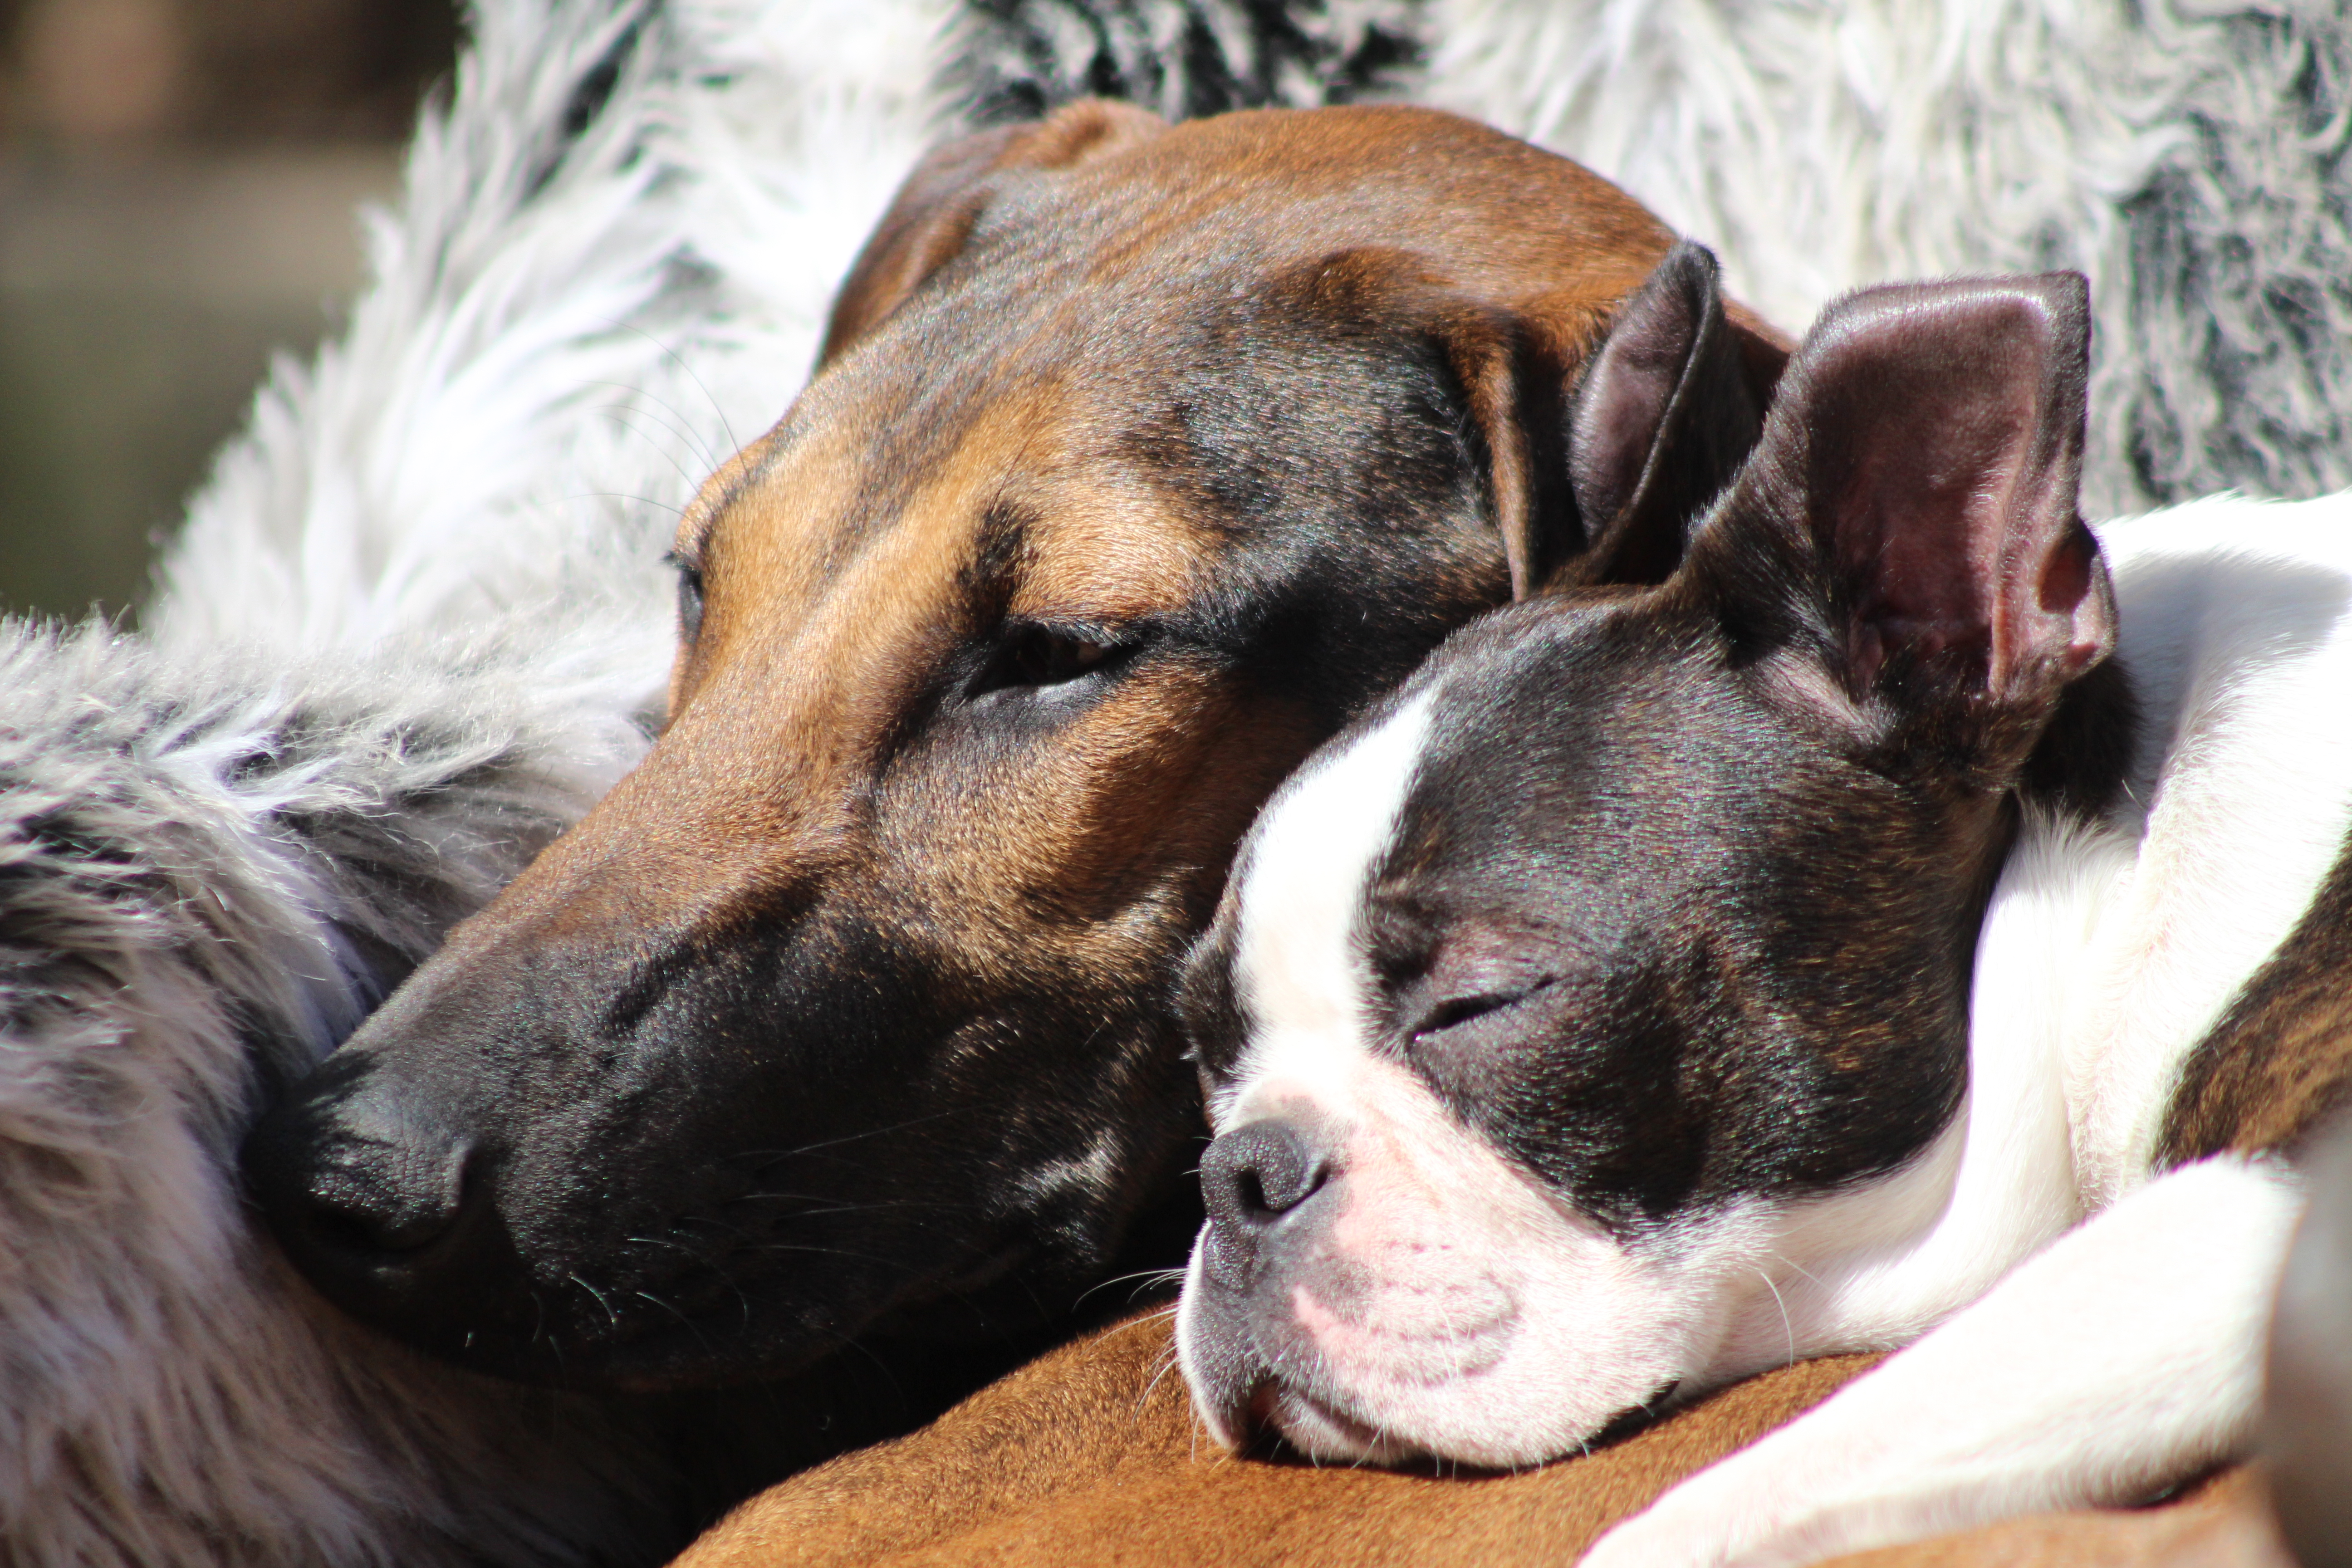 Pheremones do have important role in dog breeding